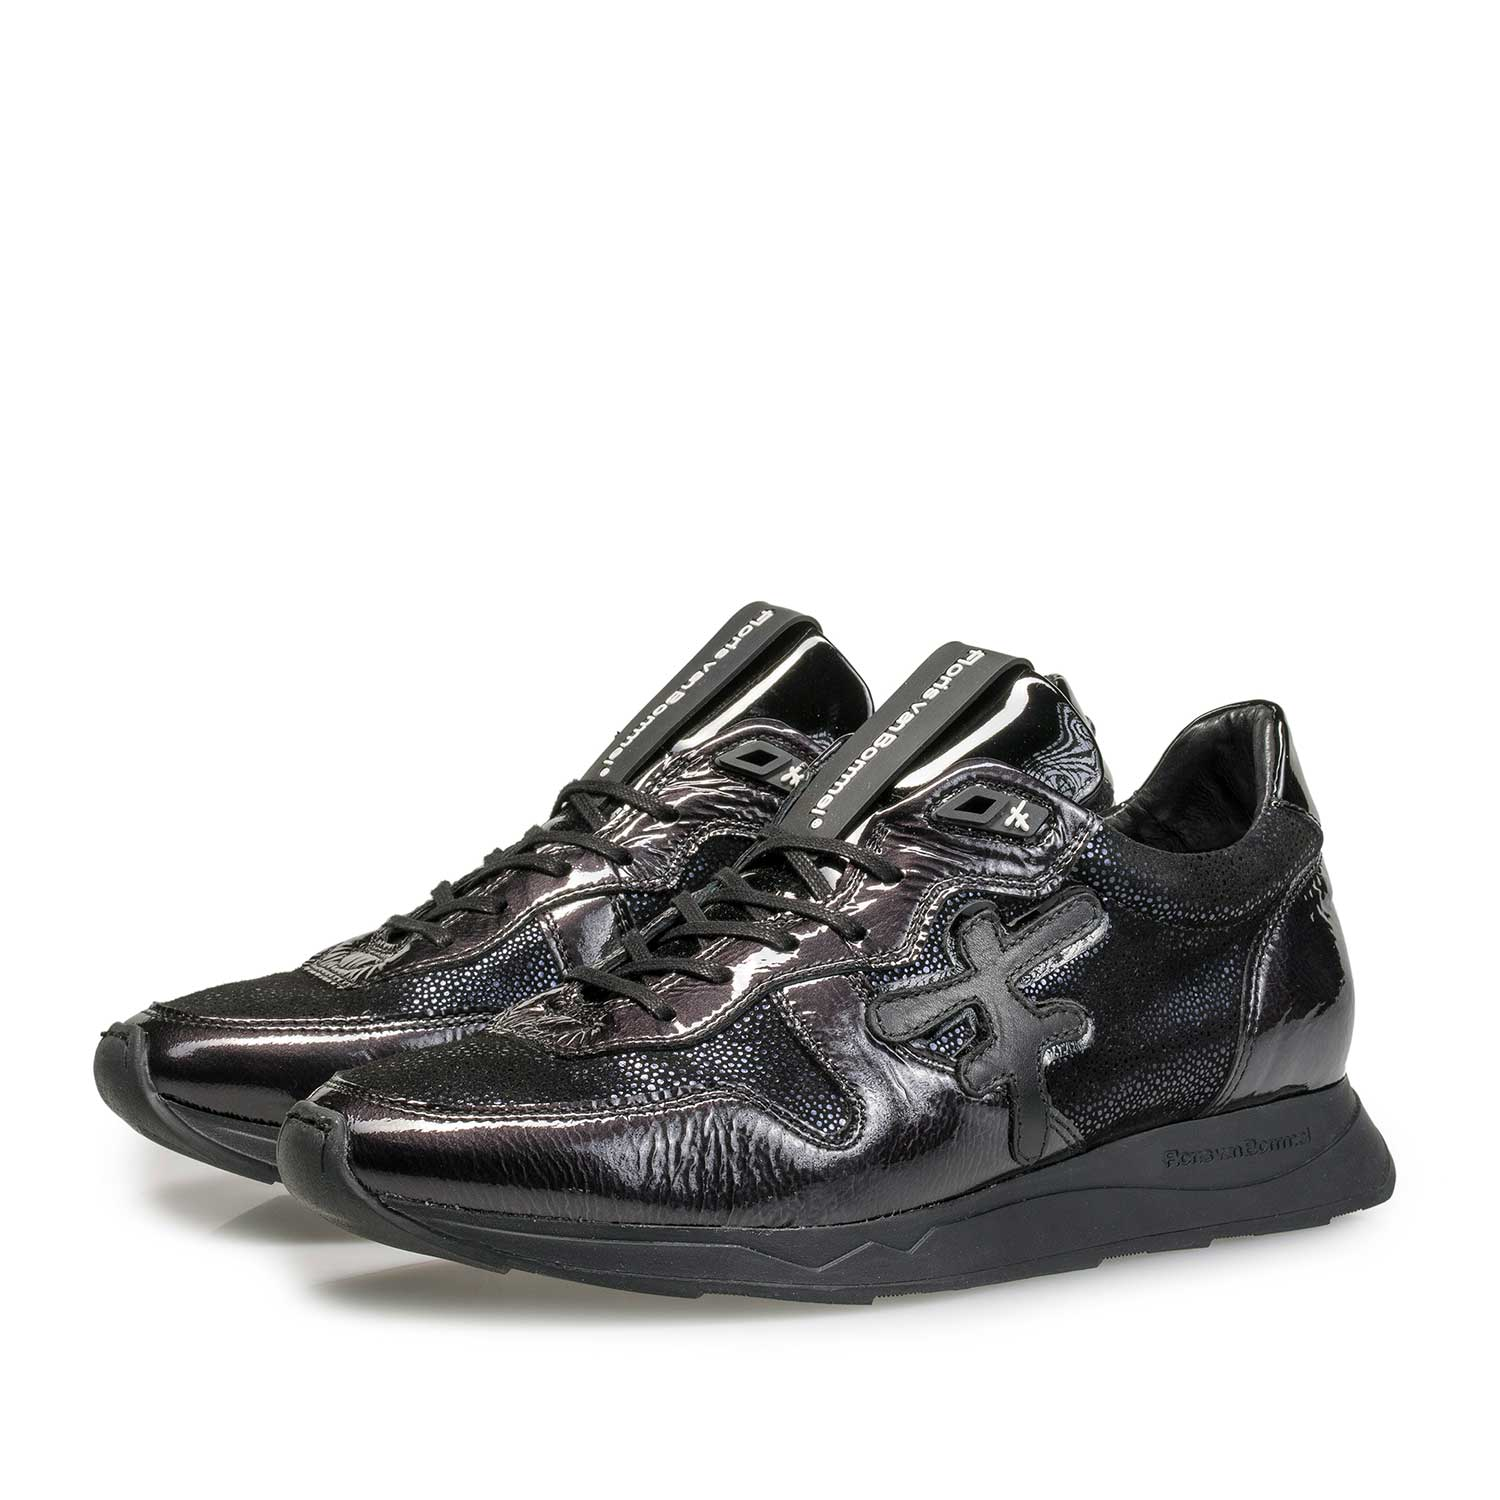 85255/01 - Black patent leather sneaker with F-logo